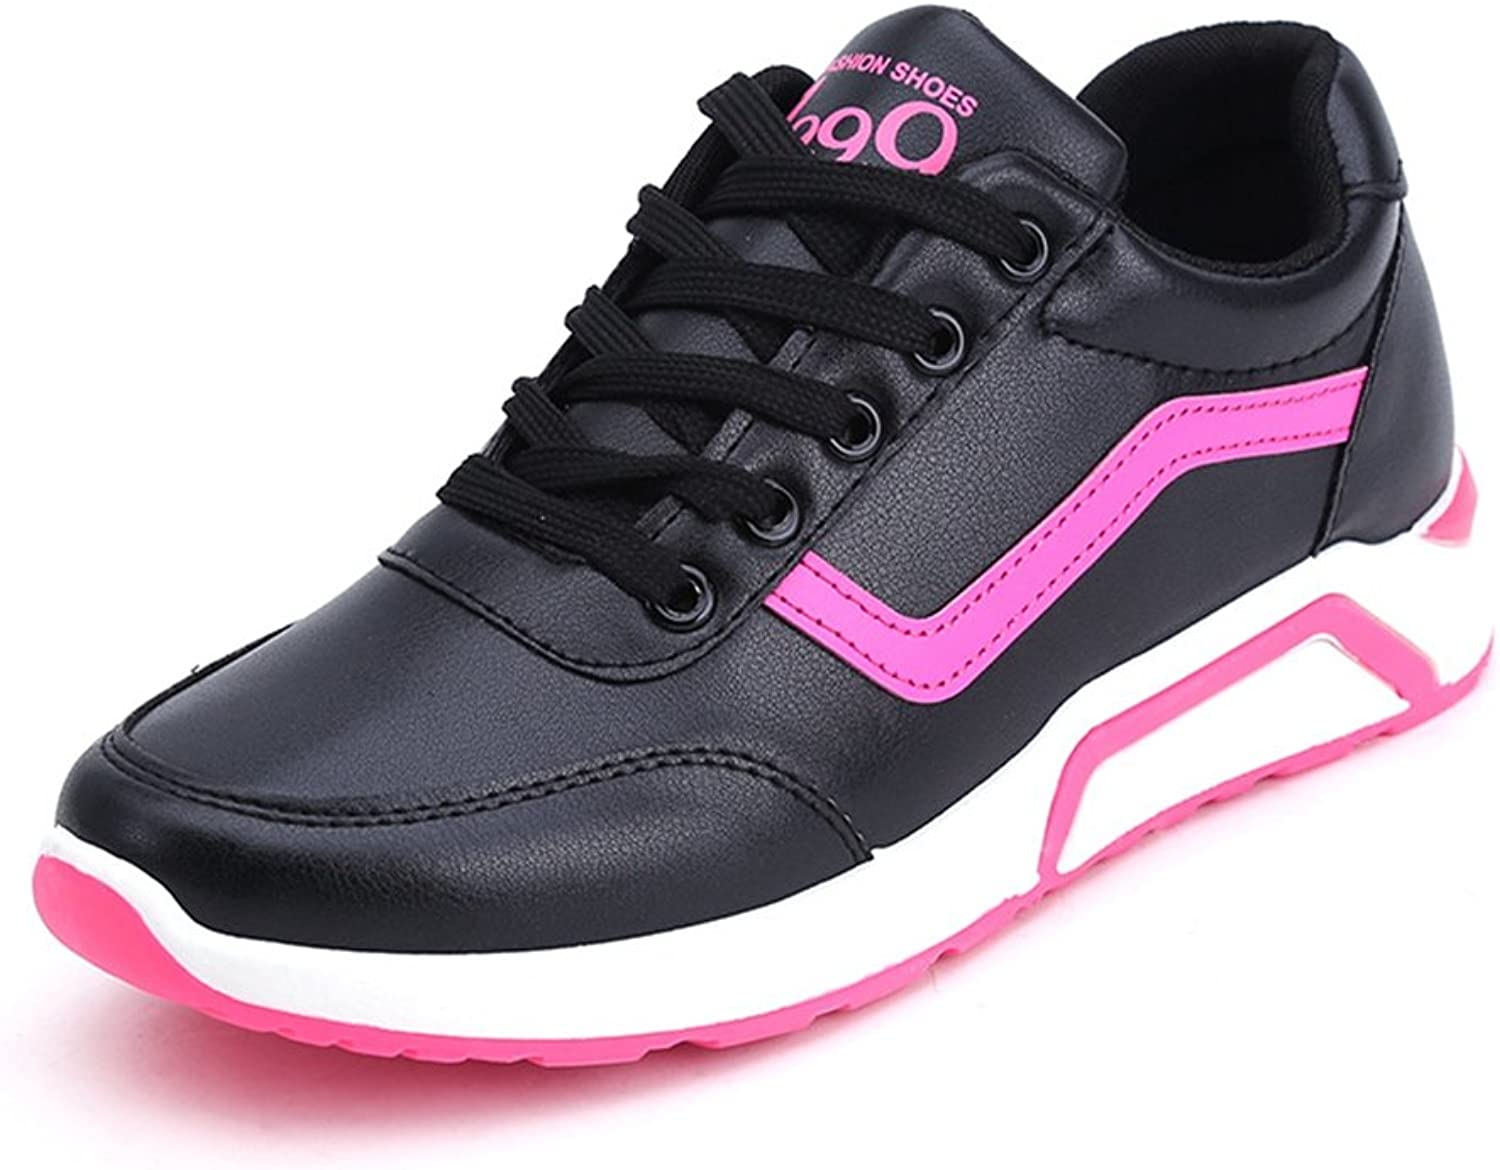 CYBLING Womens Casual Sport shoes Comfort Flat Lace up Running Walking Sneaker